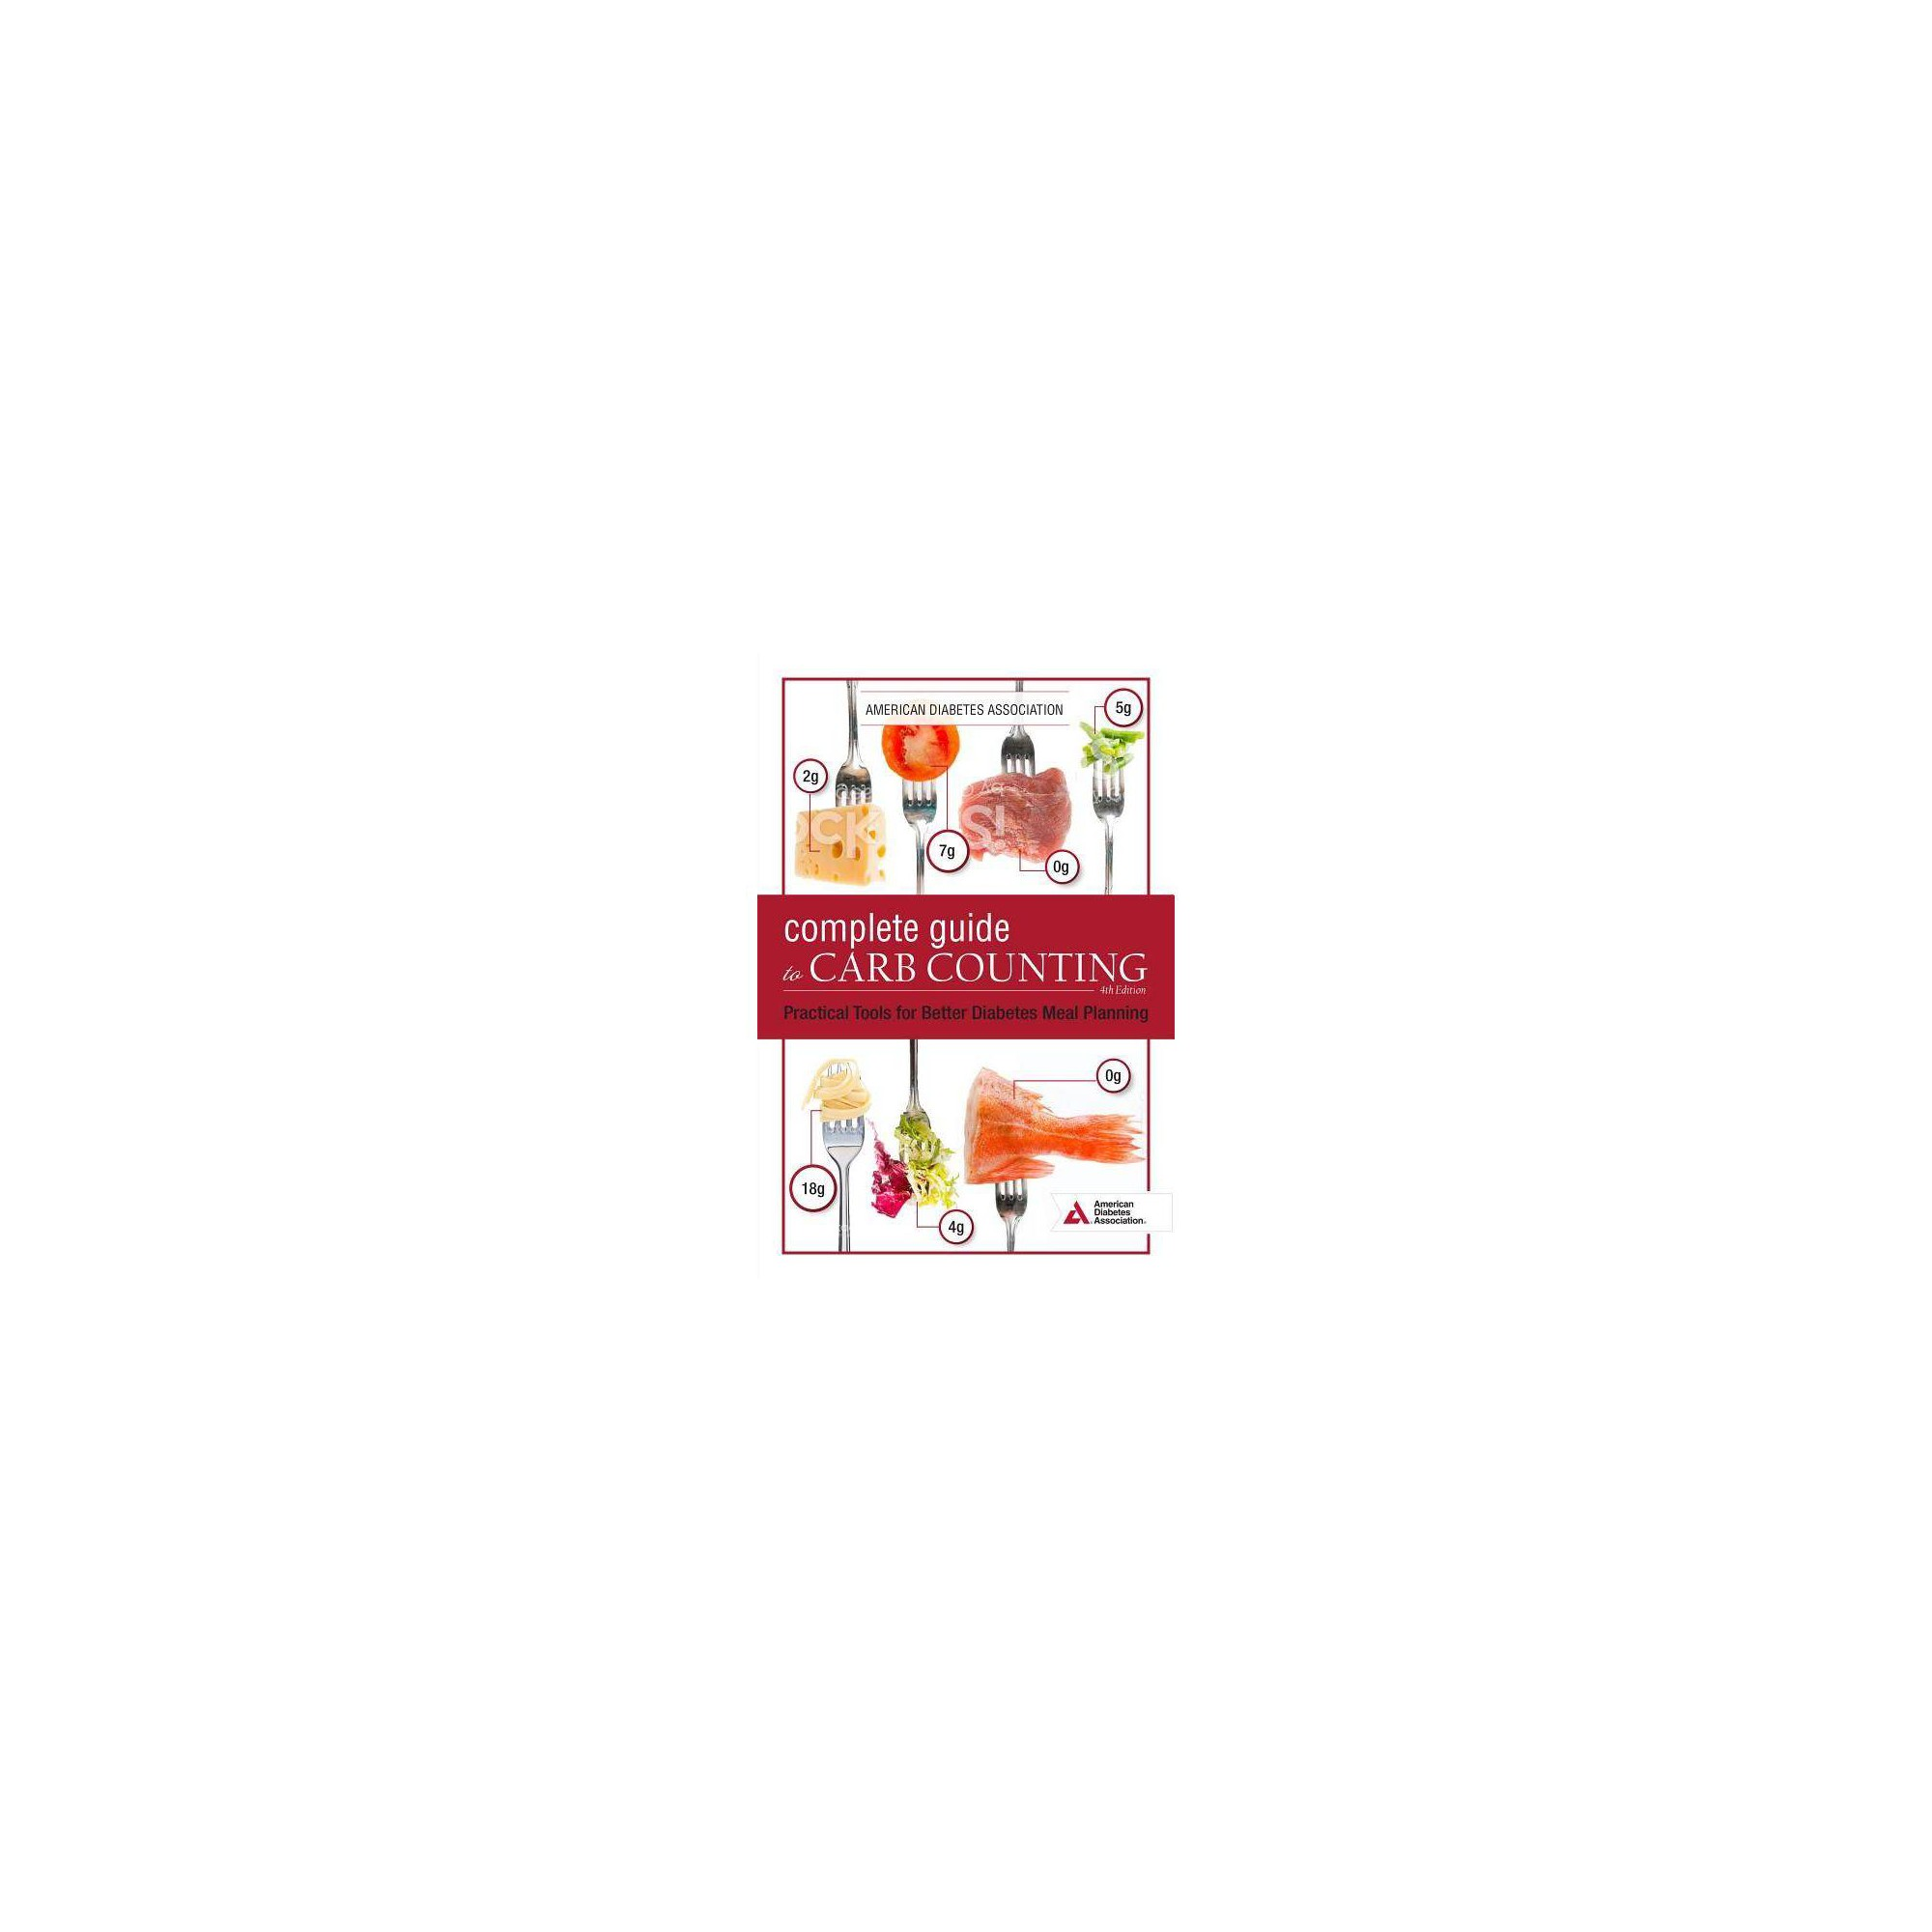 The Complete Guide to Carb Counting, 4th Edition by